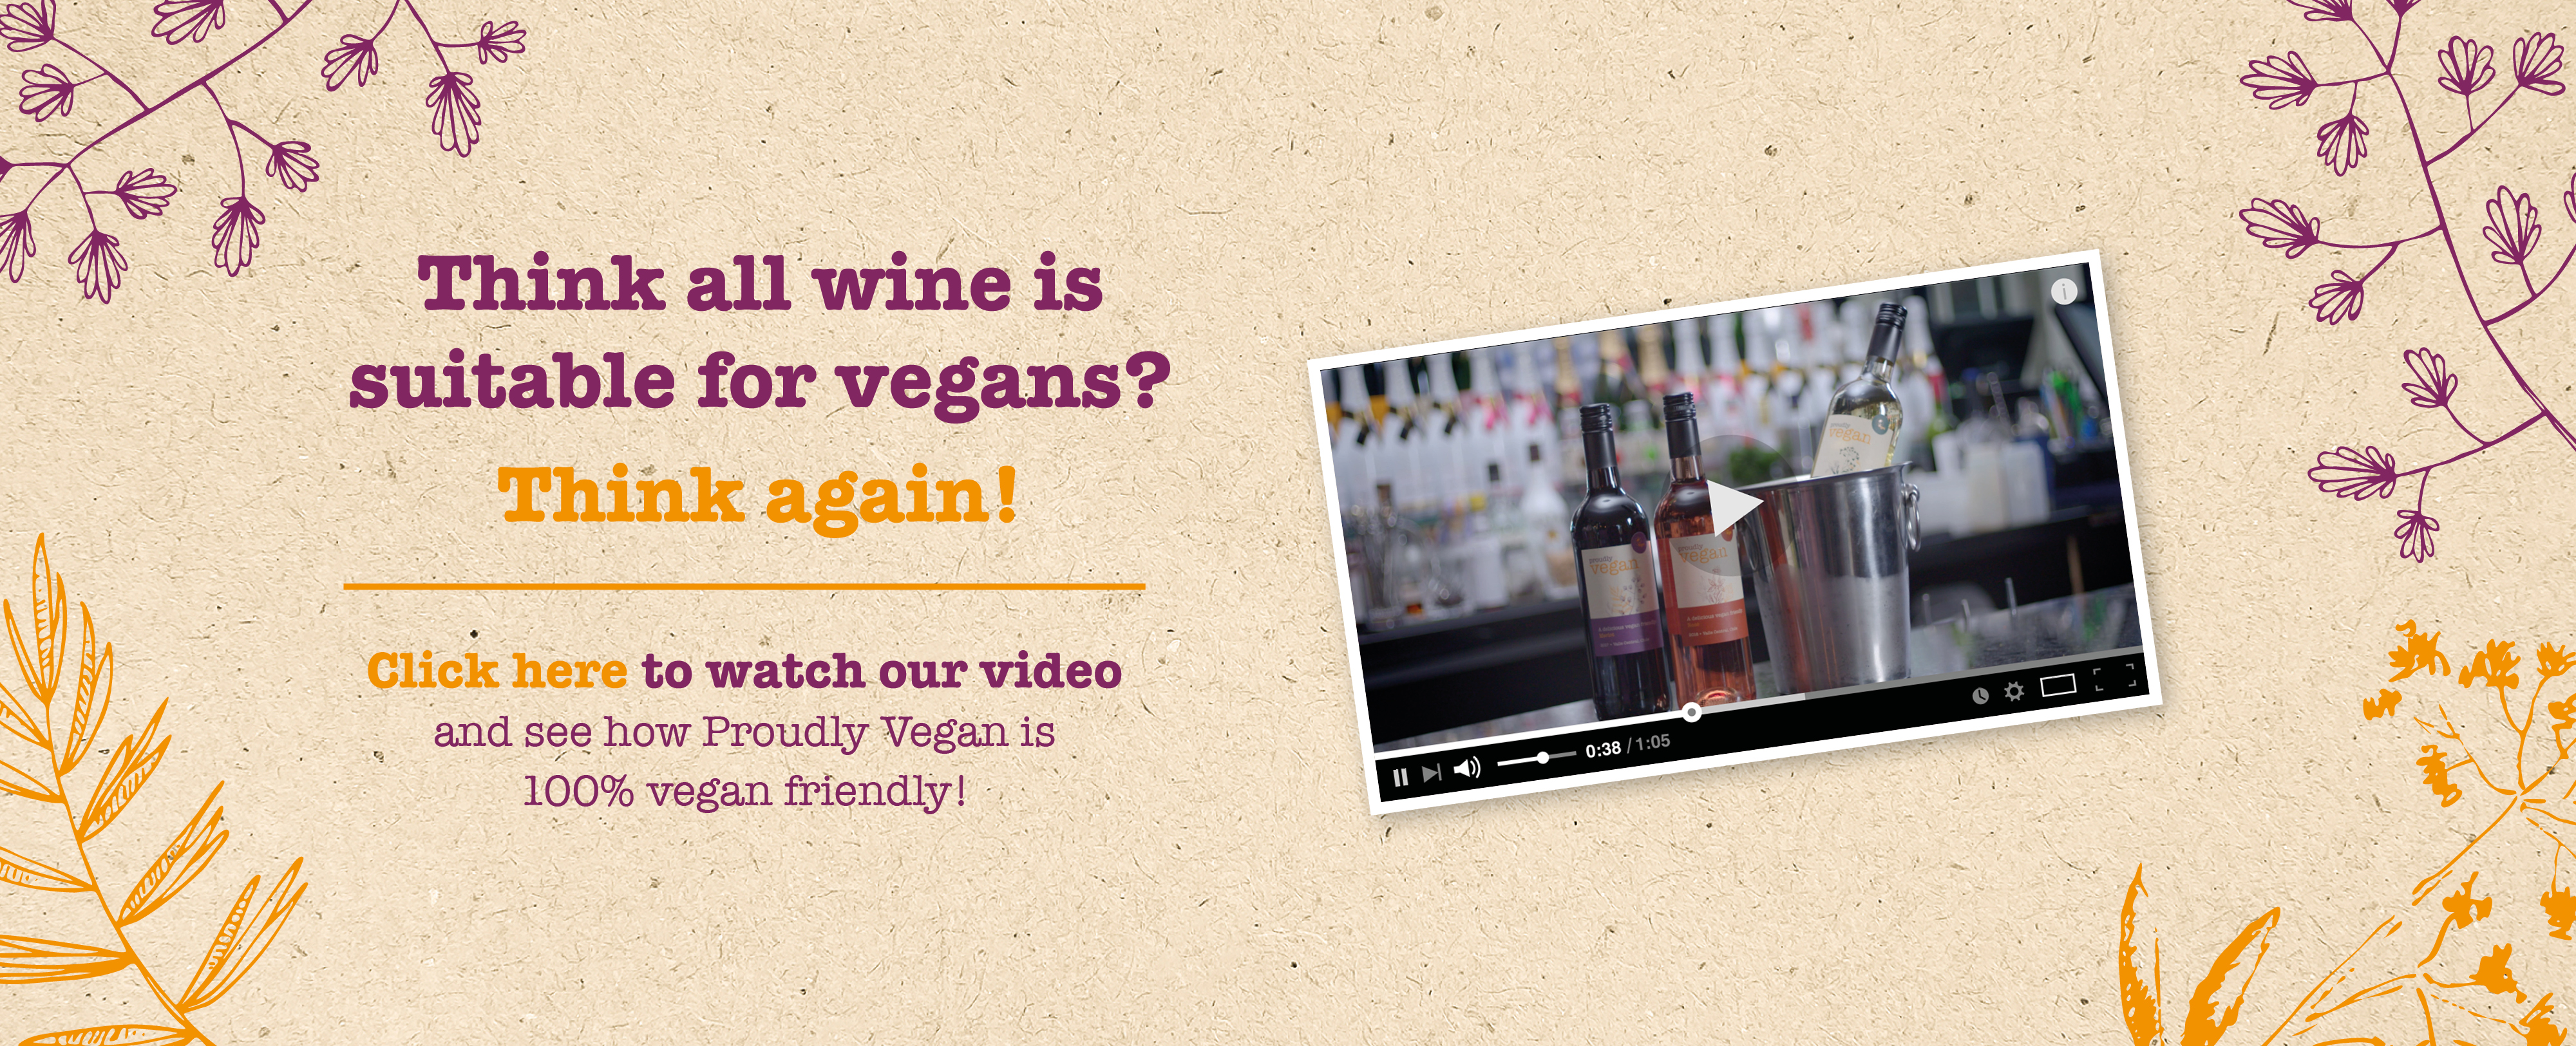 Proudly Vegan - Think all wine is suitable for vegans? Think again!